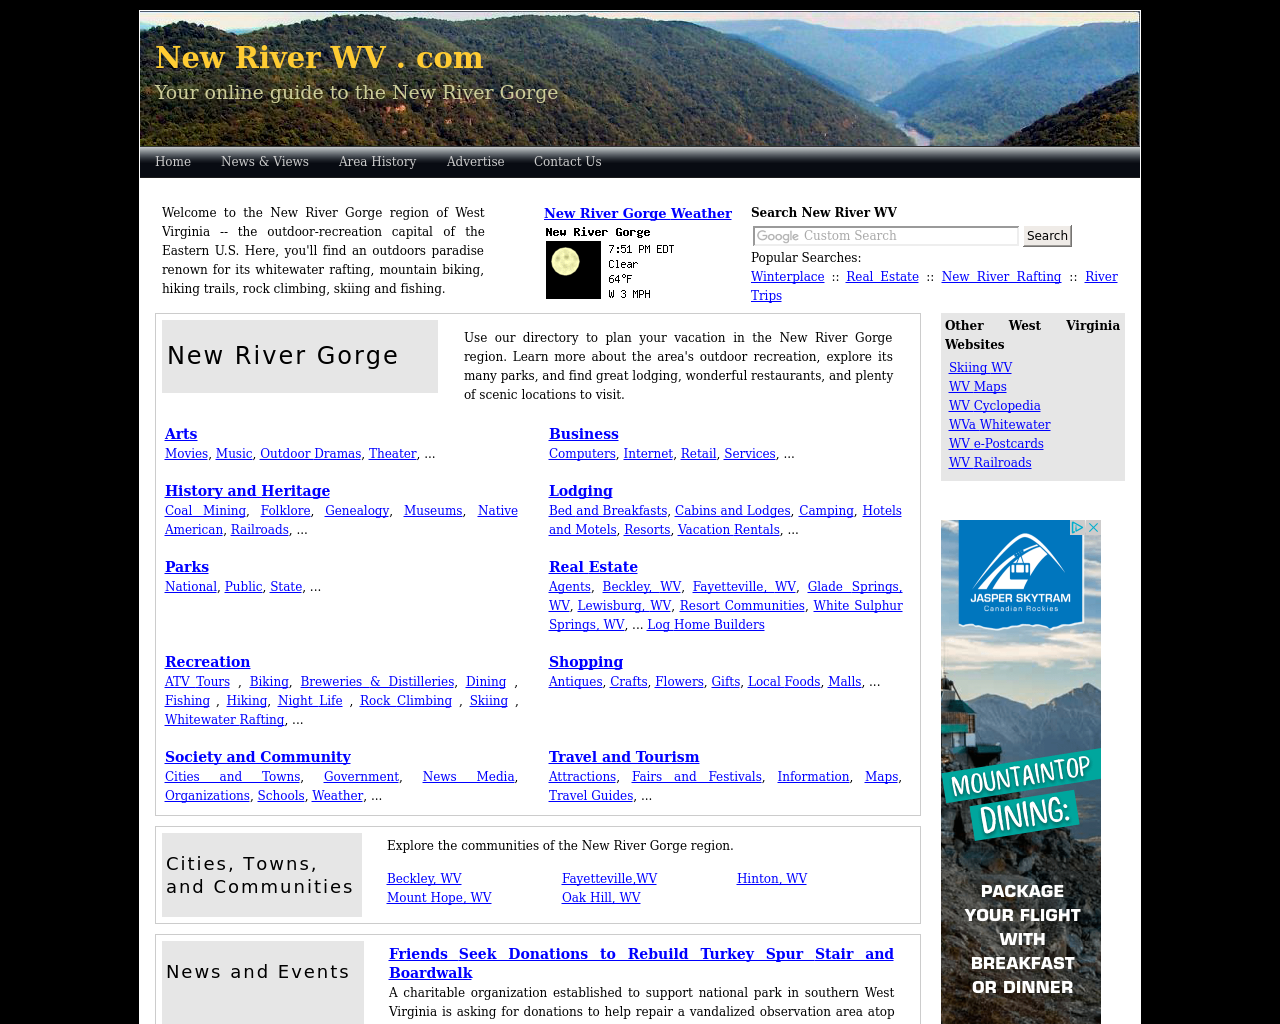 newriverwv.com-Advertising-Reviews-Pricing